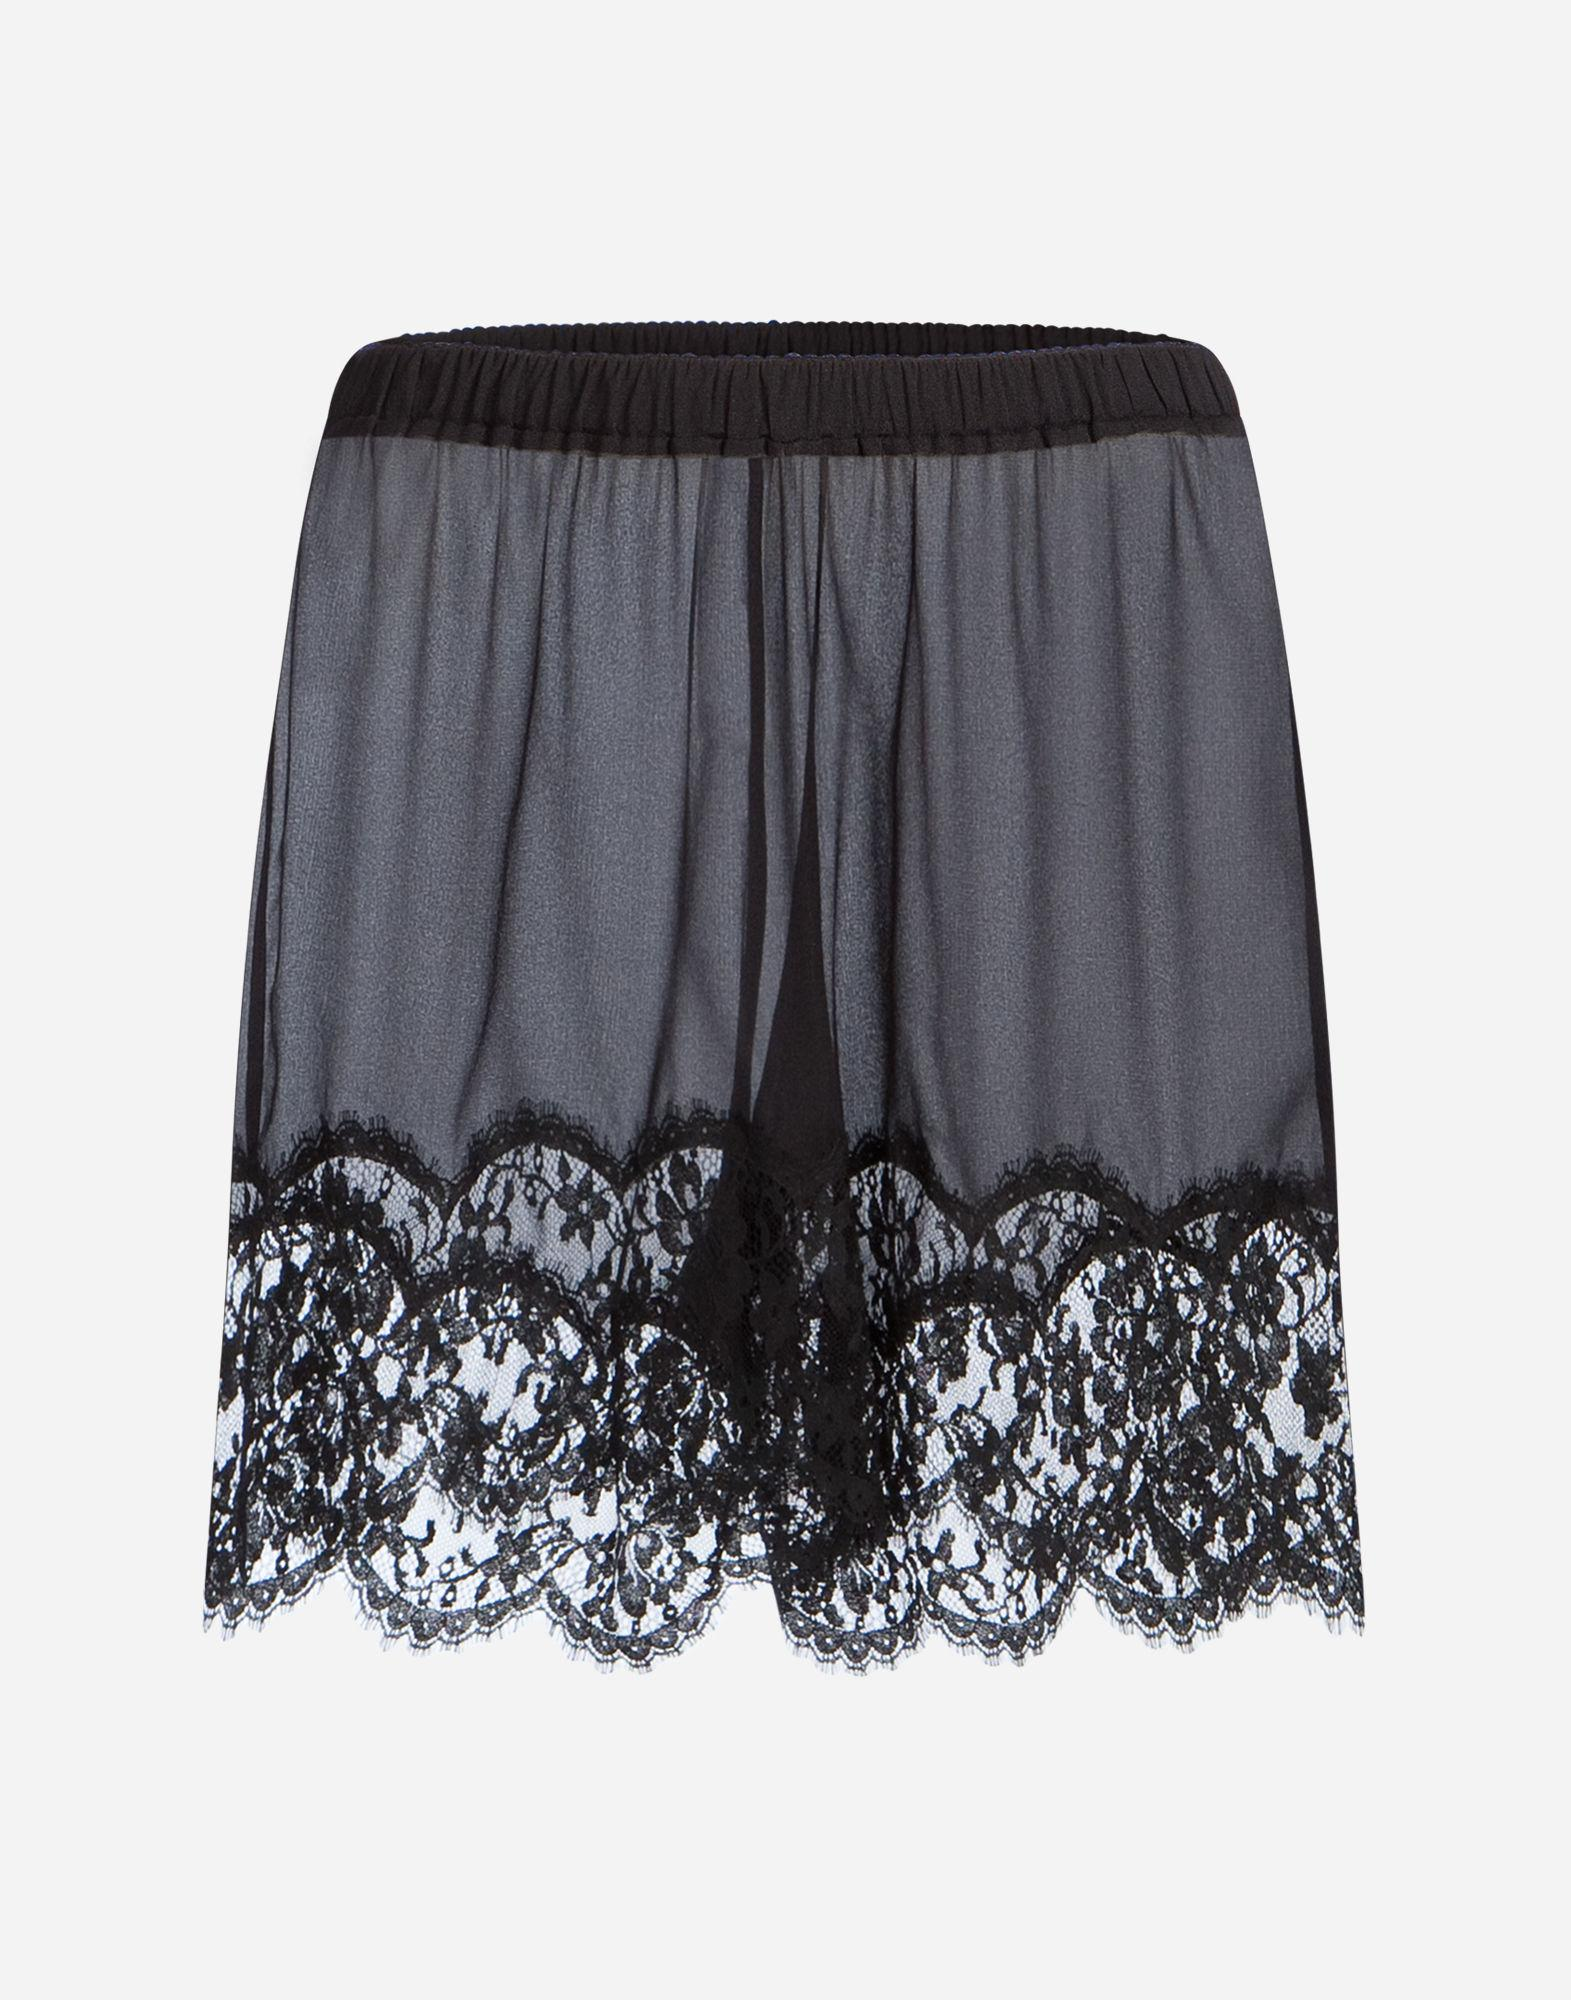 Dolce & Gabbana Silk Lingerie Shorts With Lace Trim In Black